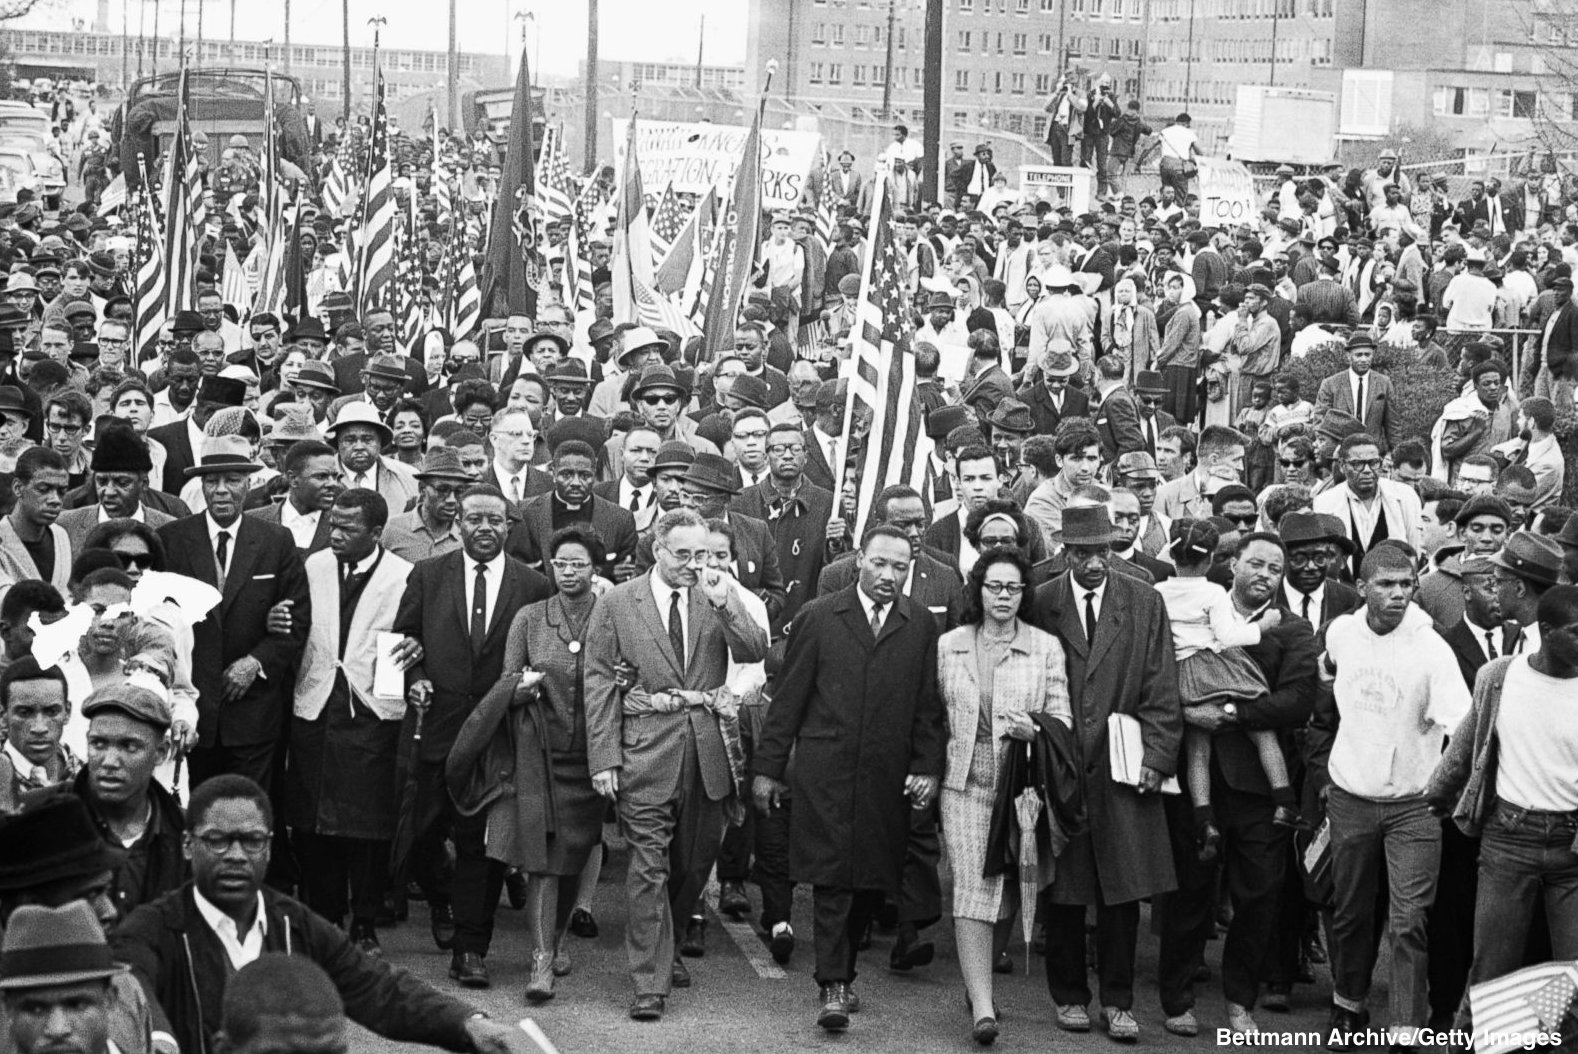 Happy Martin Luther King, Jr. Day. See his life, activism and legacy in photos: https://t.co/dQPgCZIQdI https://t.co/KNt6VaAA15